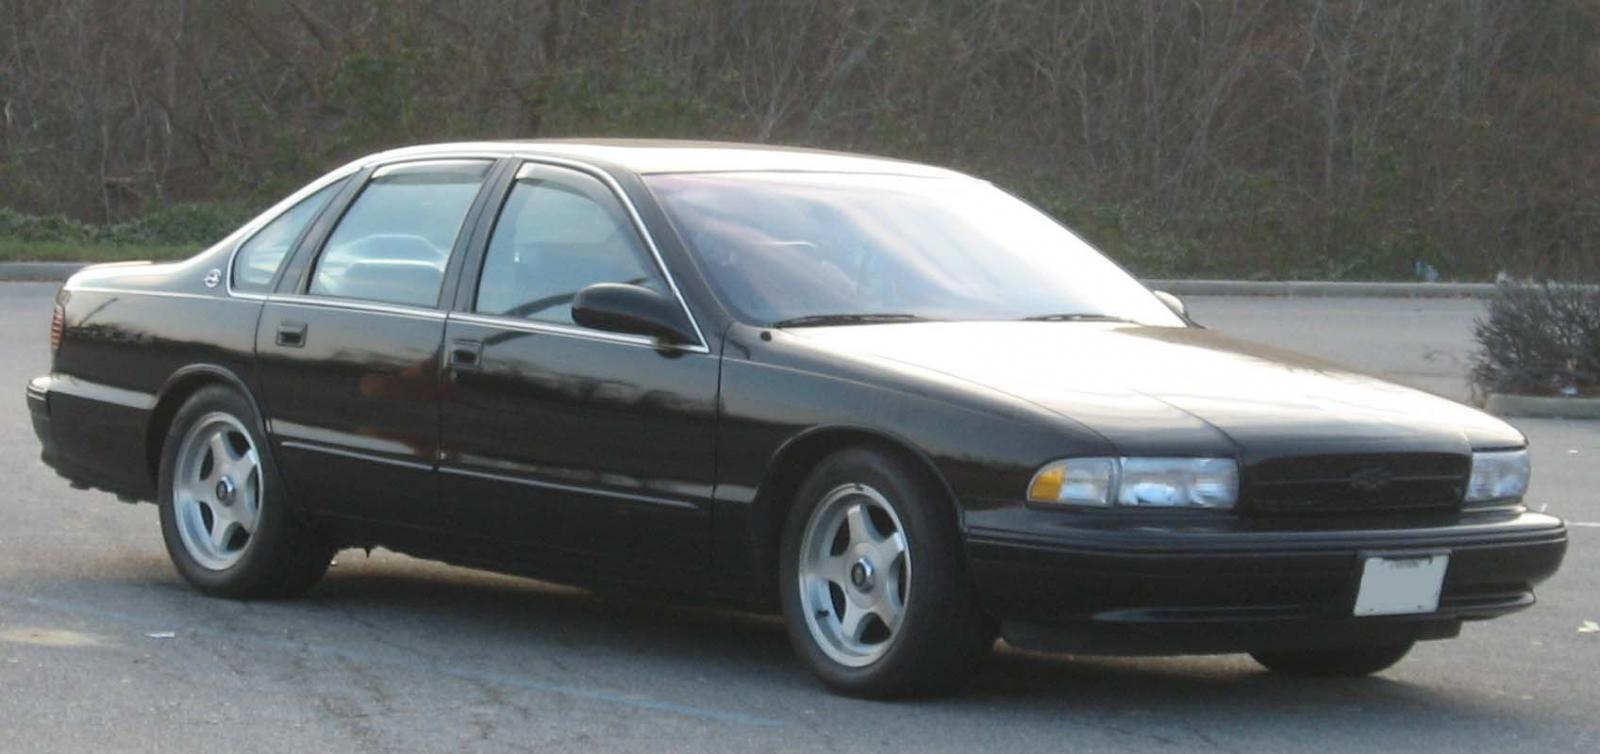 hight resolution of 800 1024 1280 1600 origin 1996 chevrolet impala